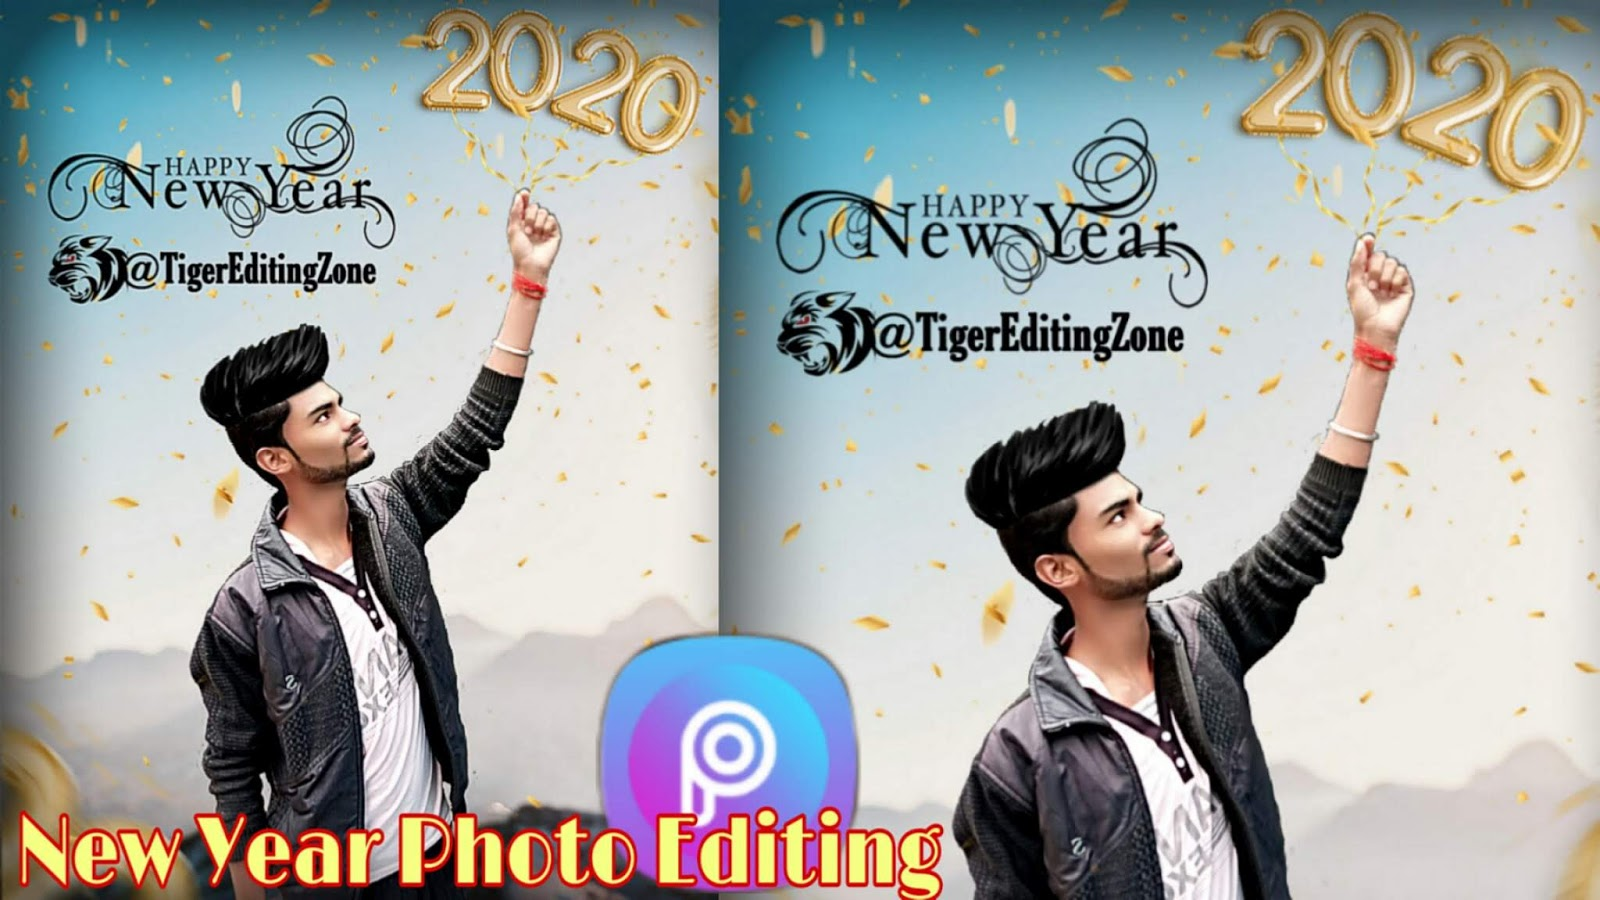 Happy New Year 2020 Photo Editing Background & PNG Download